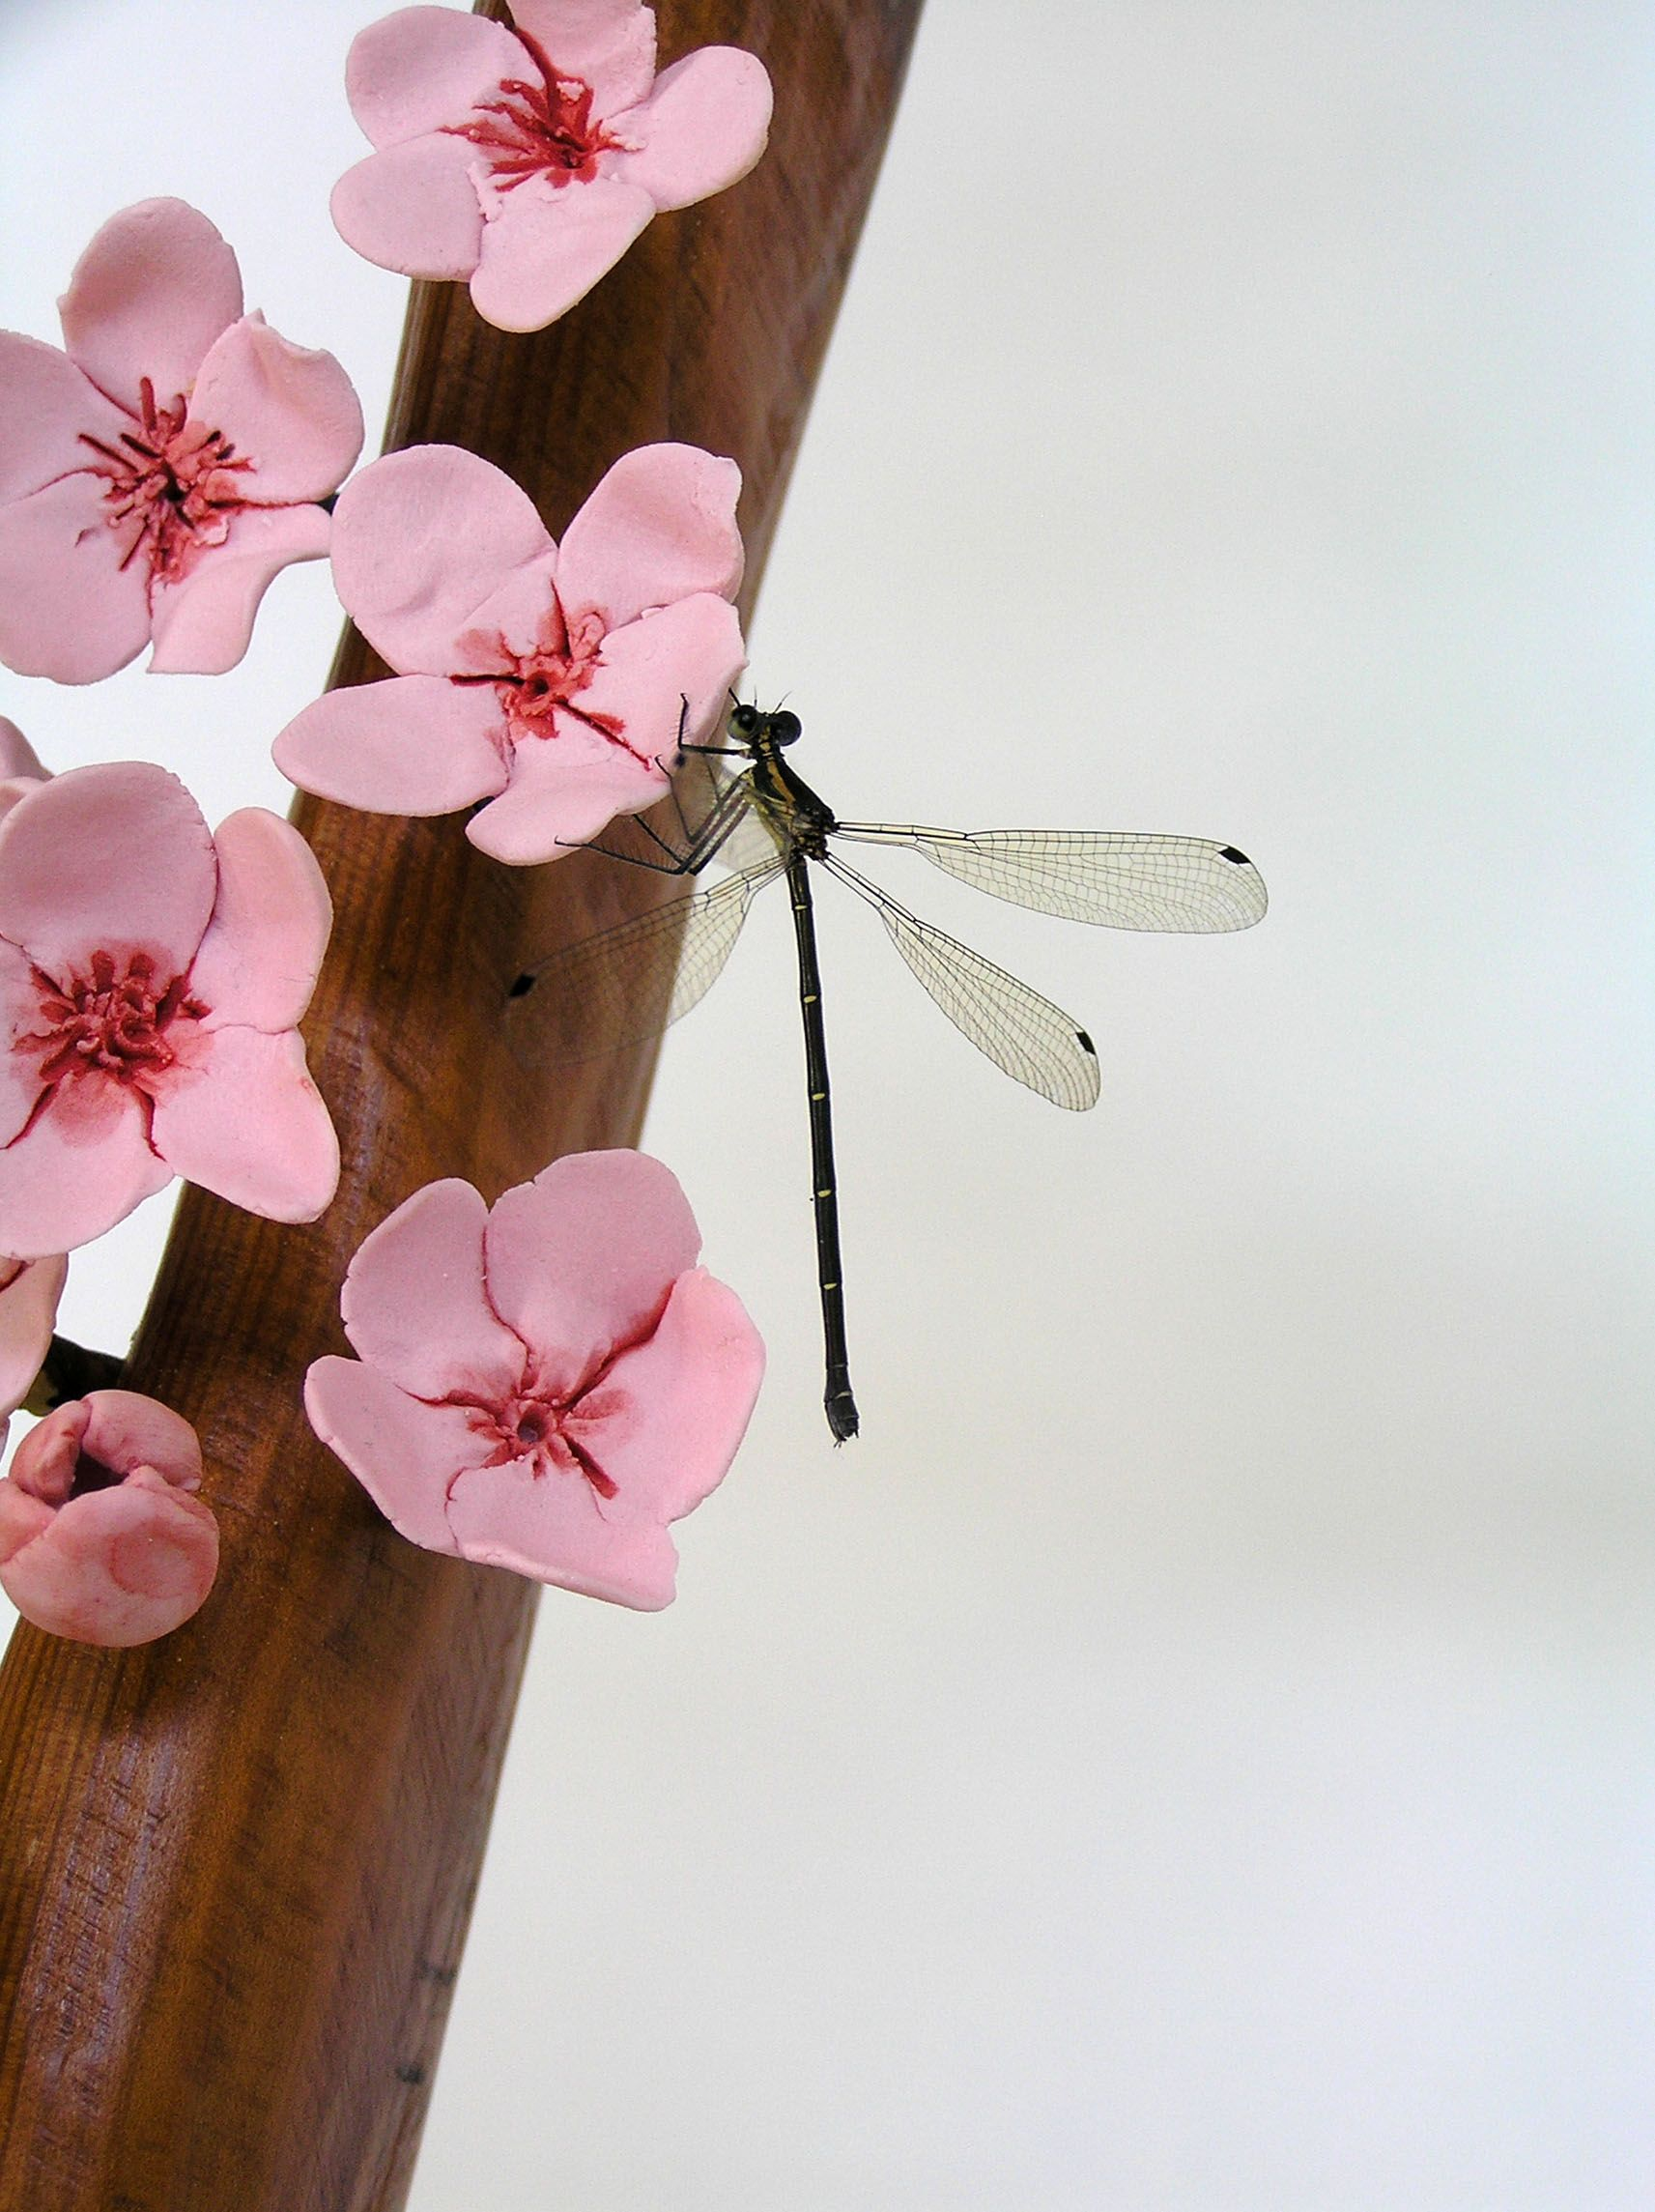 Helen Earl, Detail of Spring Walk ladder artwork and a chance encounter with live dragonfly.